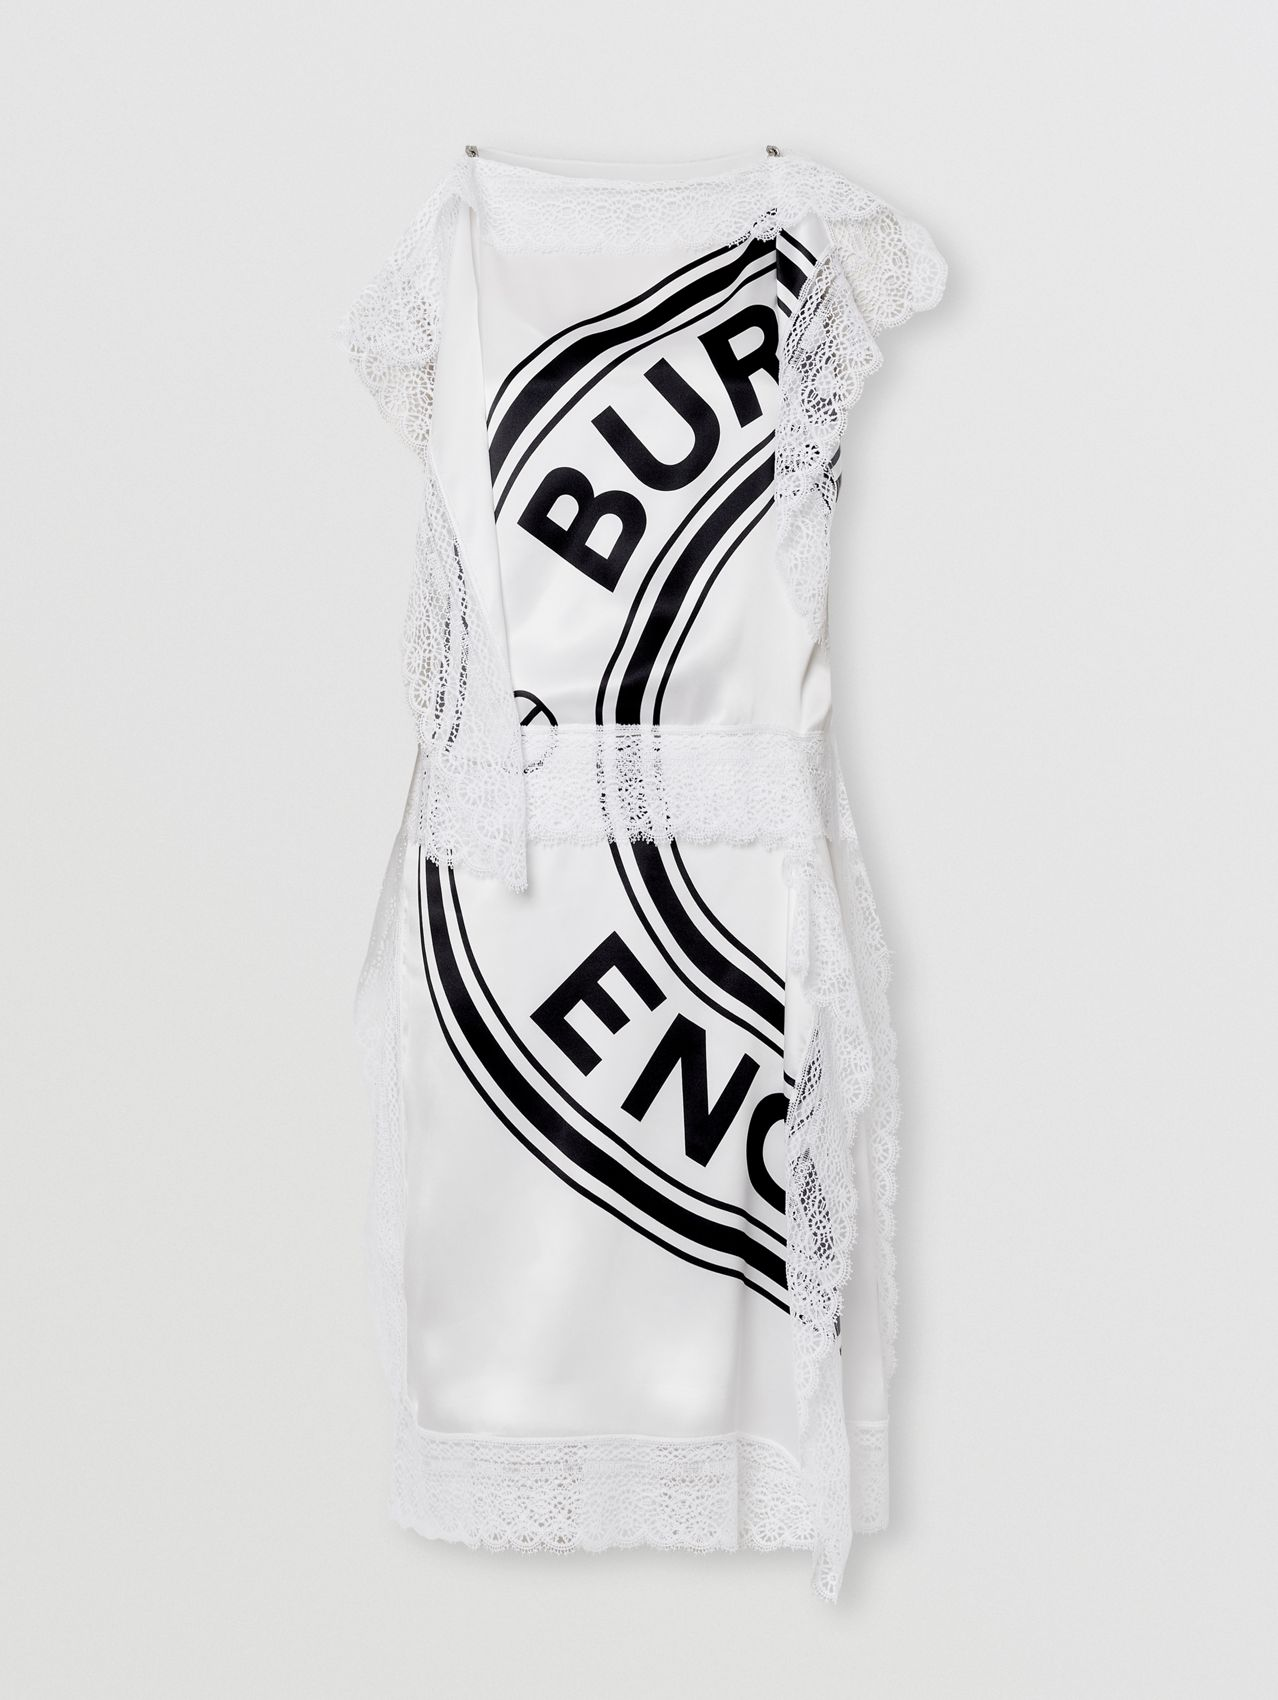 Lace Detail Logo Graphic Silk Dress in White/black